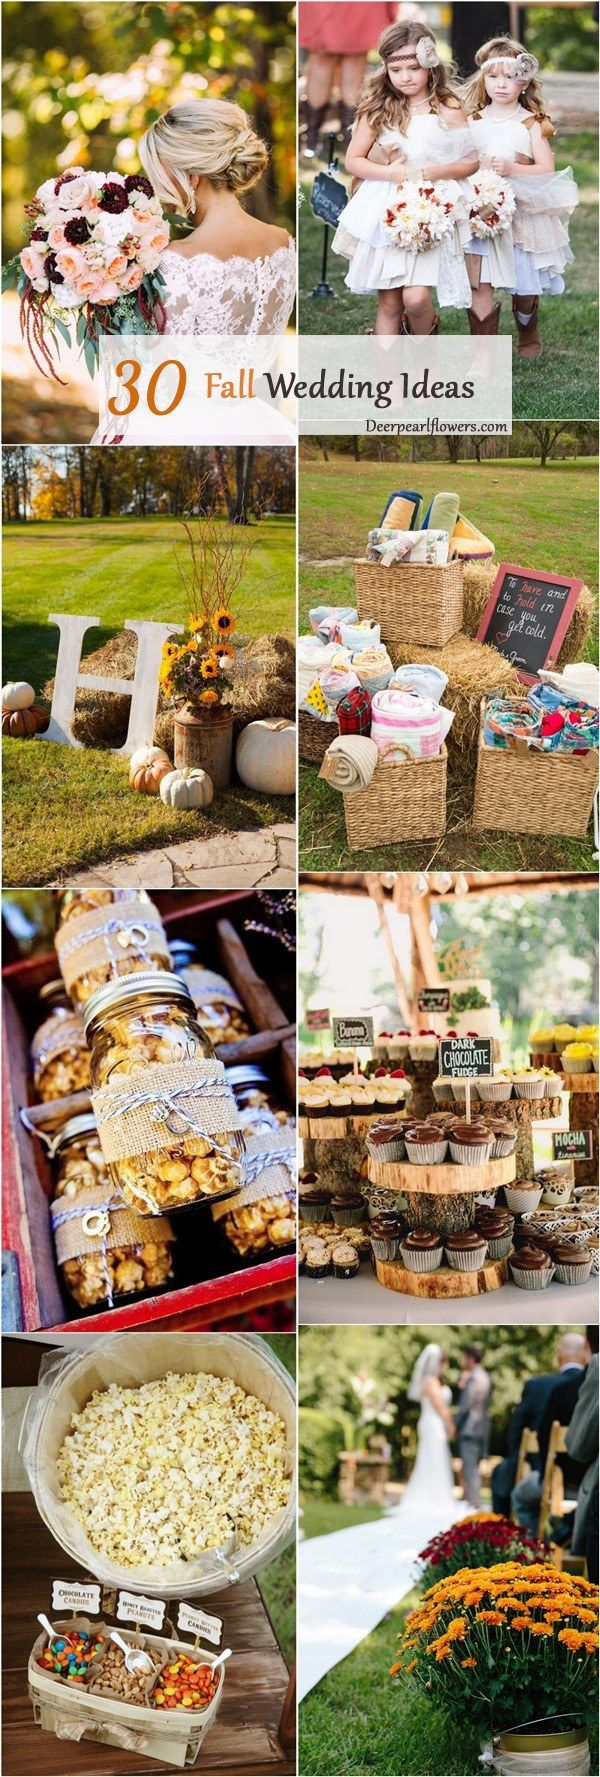 outdoor fall wedding ideas and themes / http://www.deerpearlflowers.com/autumn-fall-wedding-ideas/